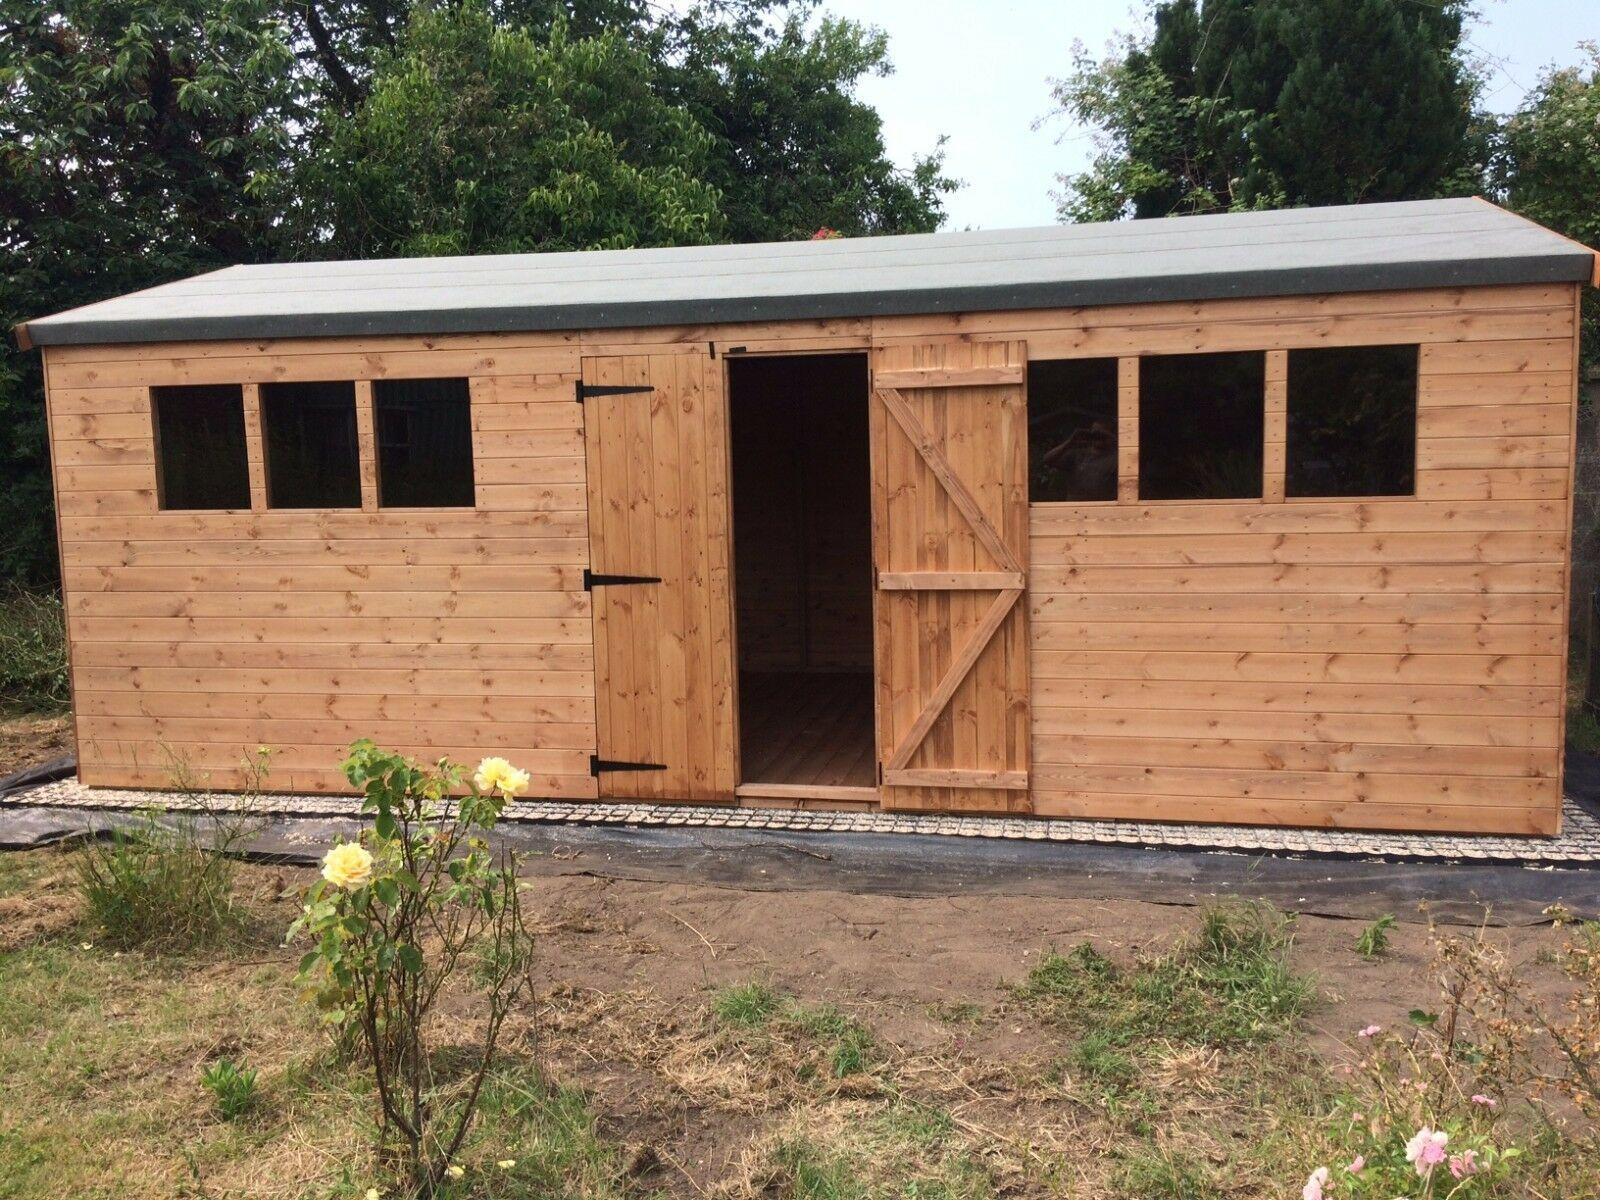 Wooden 18ft Timber Shed Workshop In Various Sizes With T G Cladding T G Floor 1 315 00 In 2020 Wooden Workshops Wooden Garage Wooden Sheds